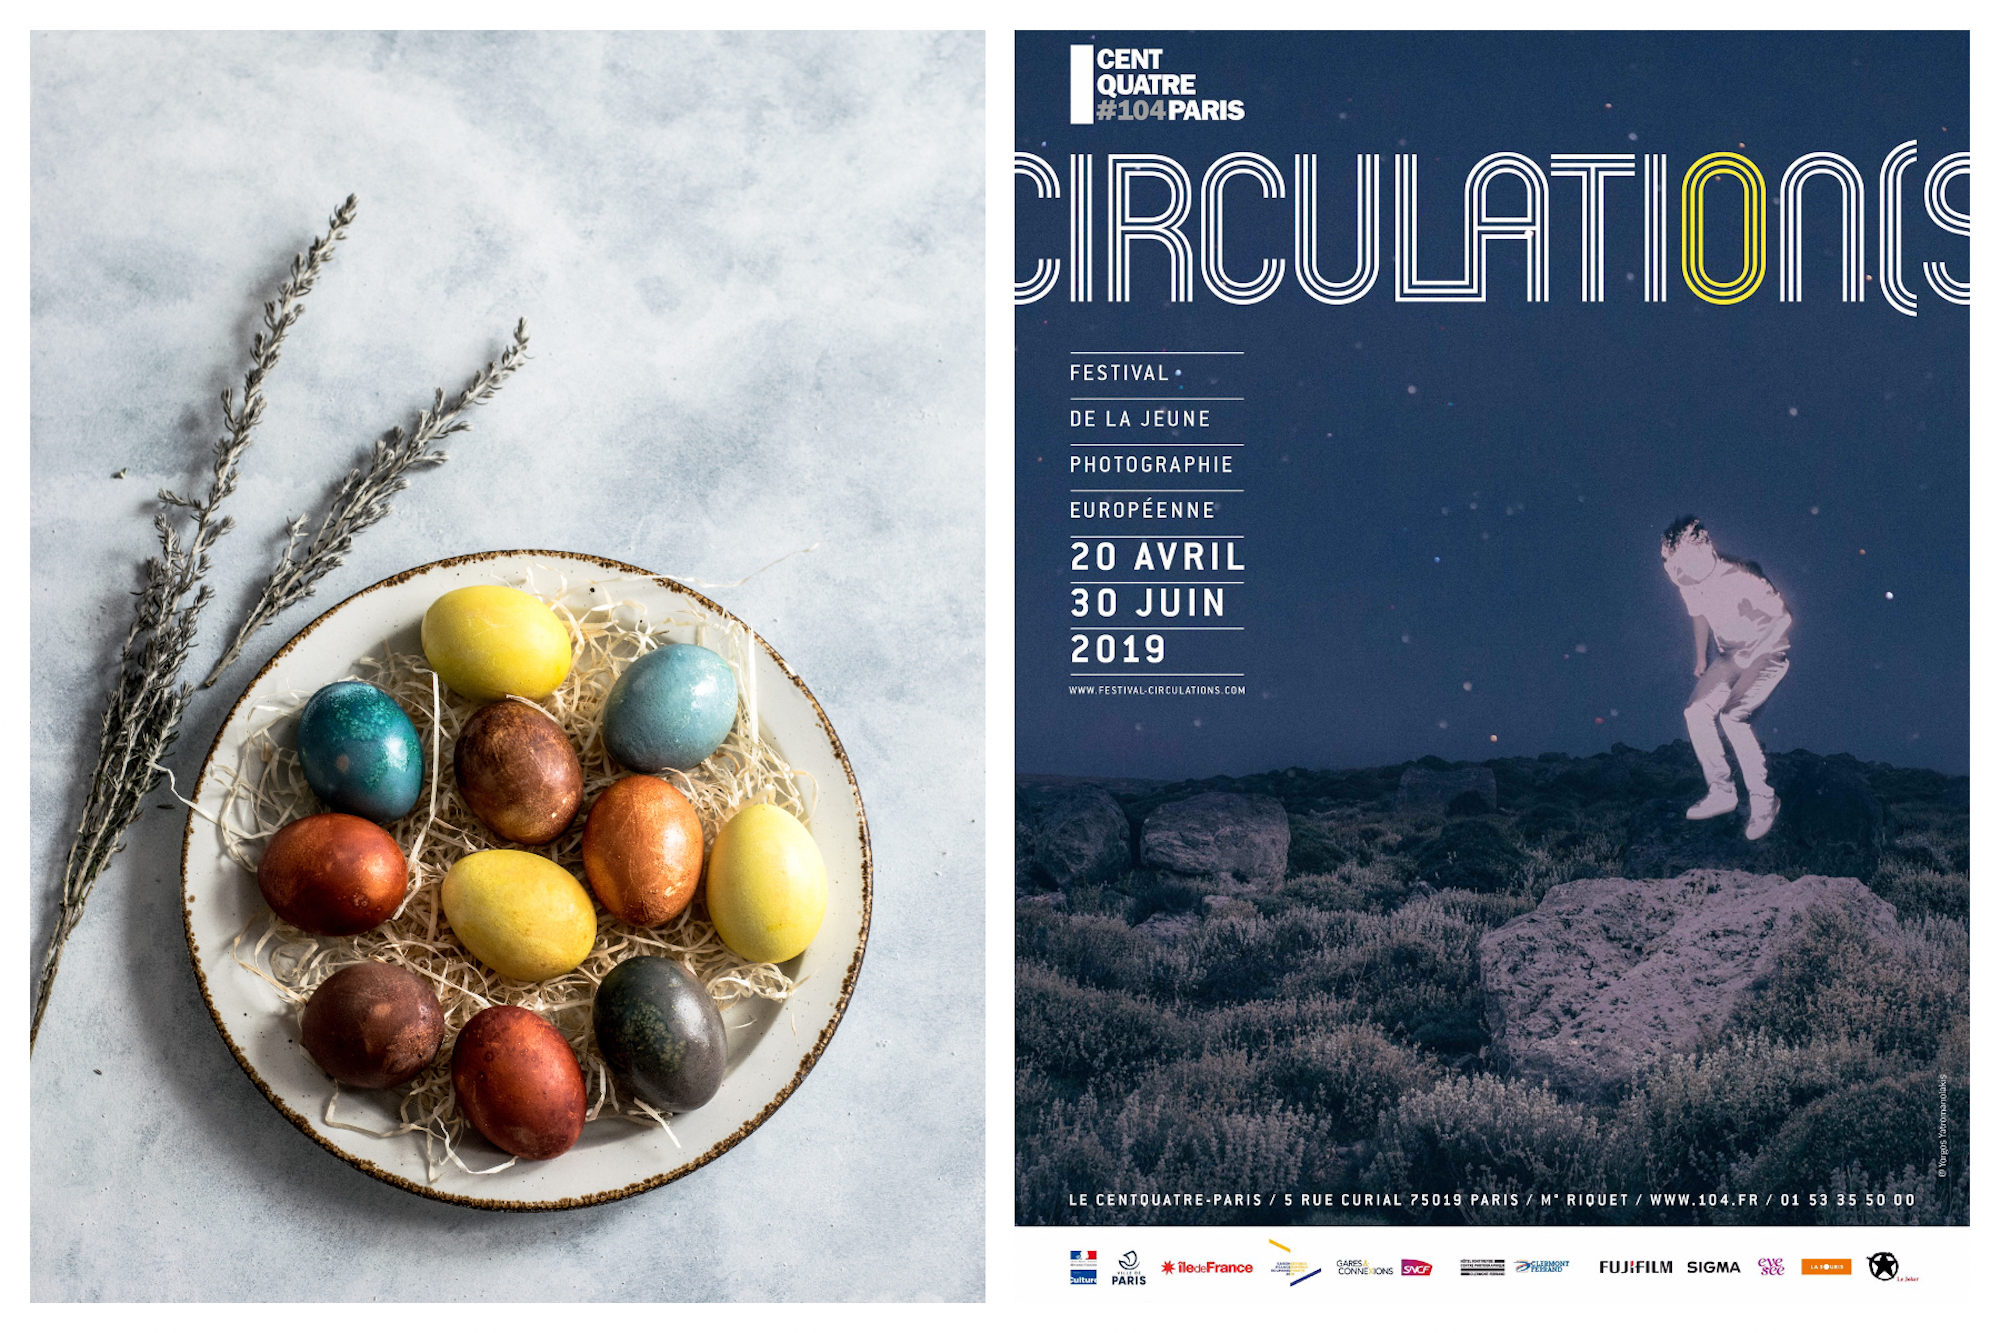 Colorful Easter eggs on a plate in Paris in April (left). A poster for the Circulation photography show in Paris this April (right).